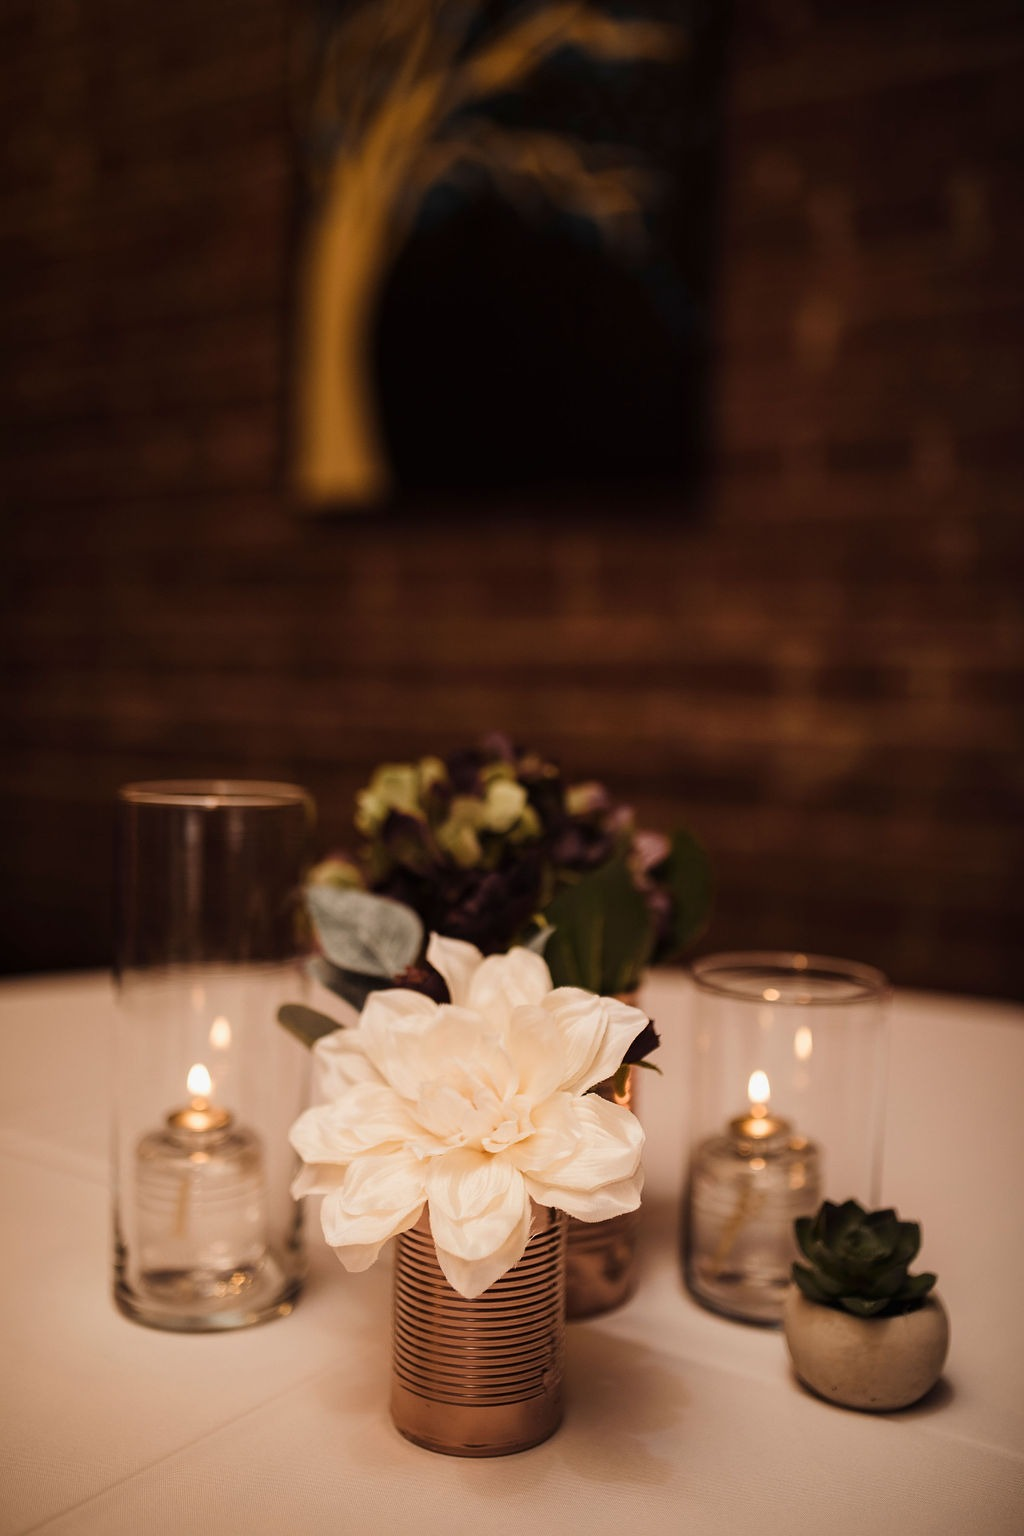 Industrial wedding centerpieces with metal cans and light bulbs